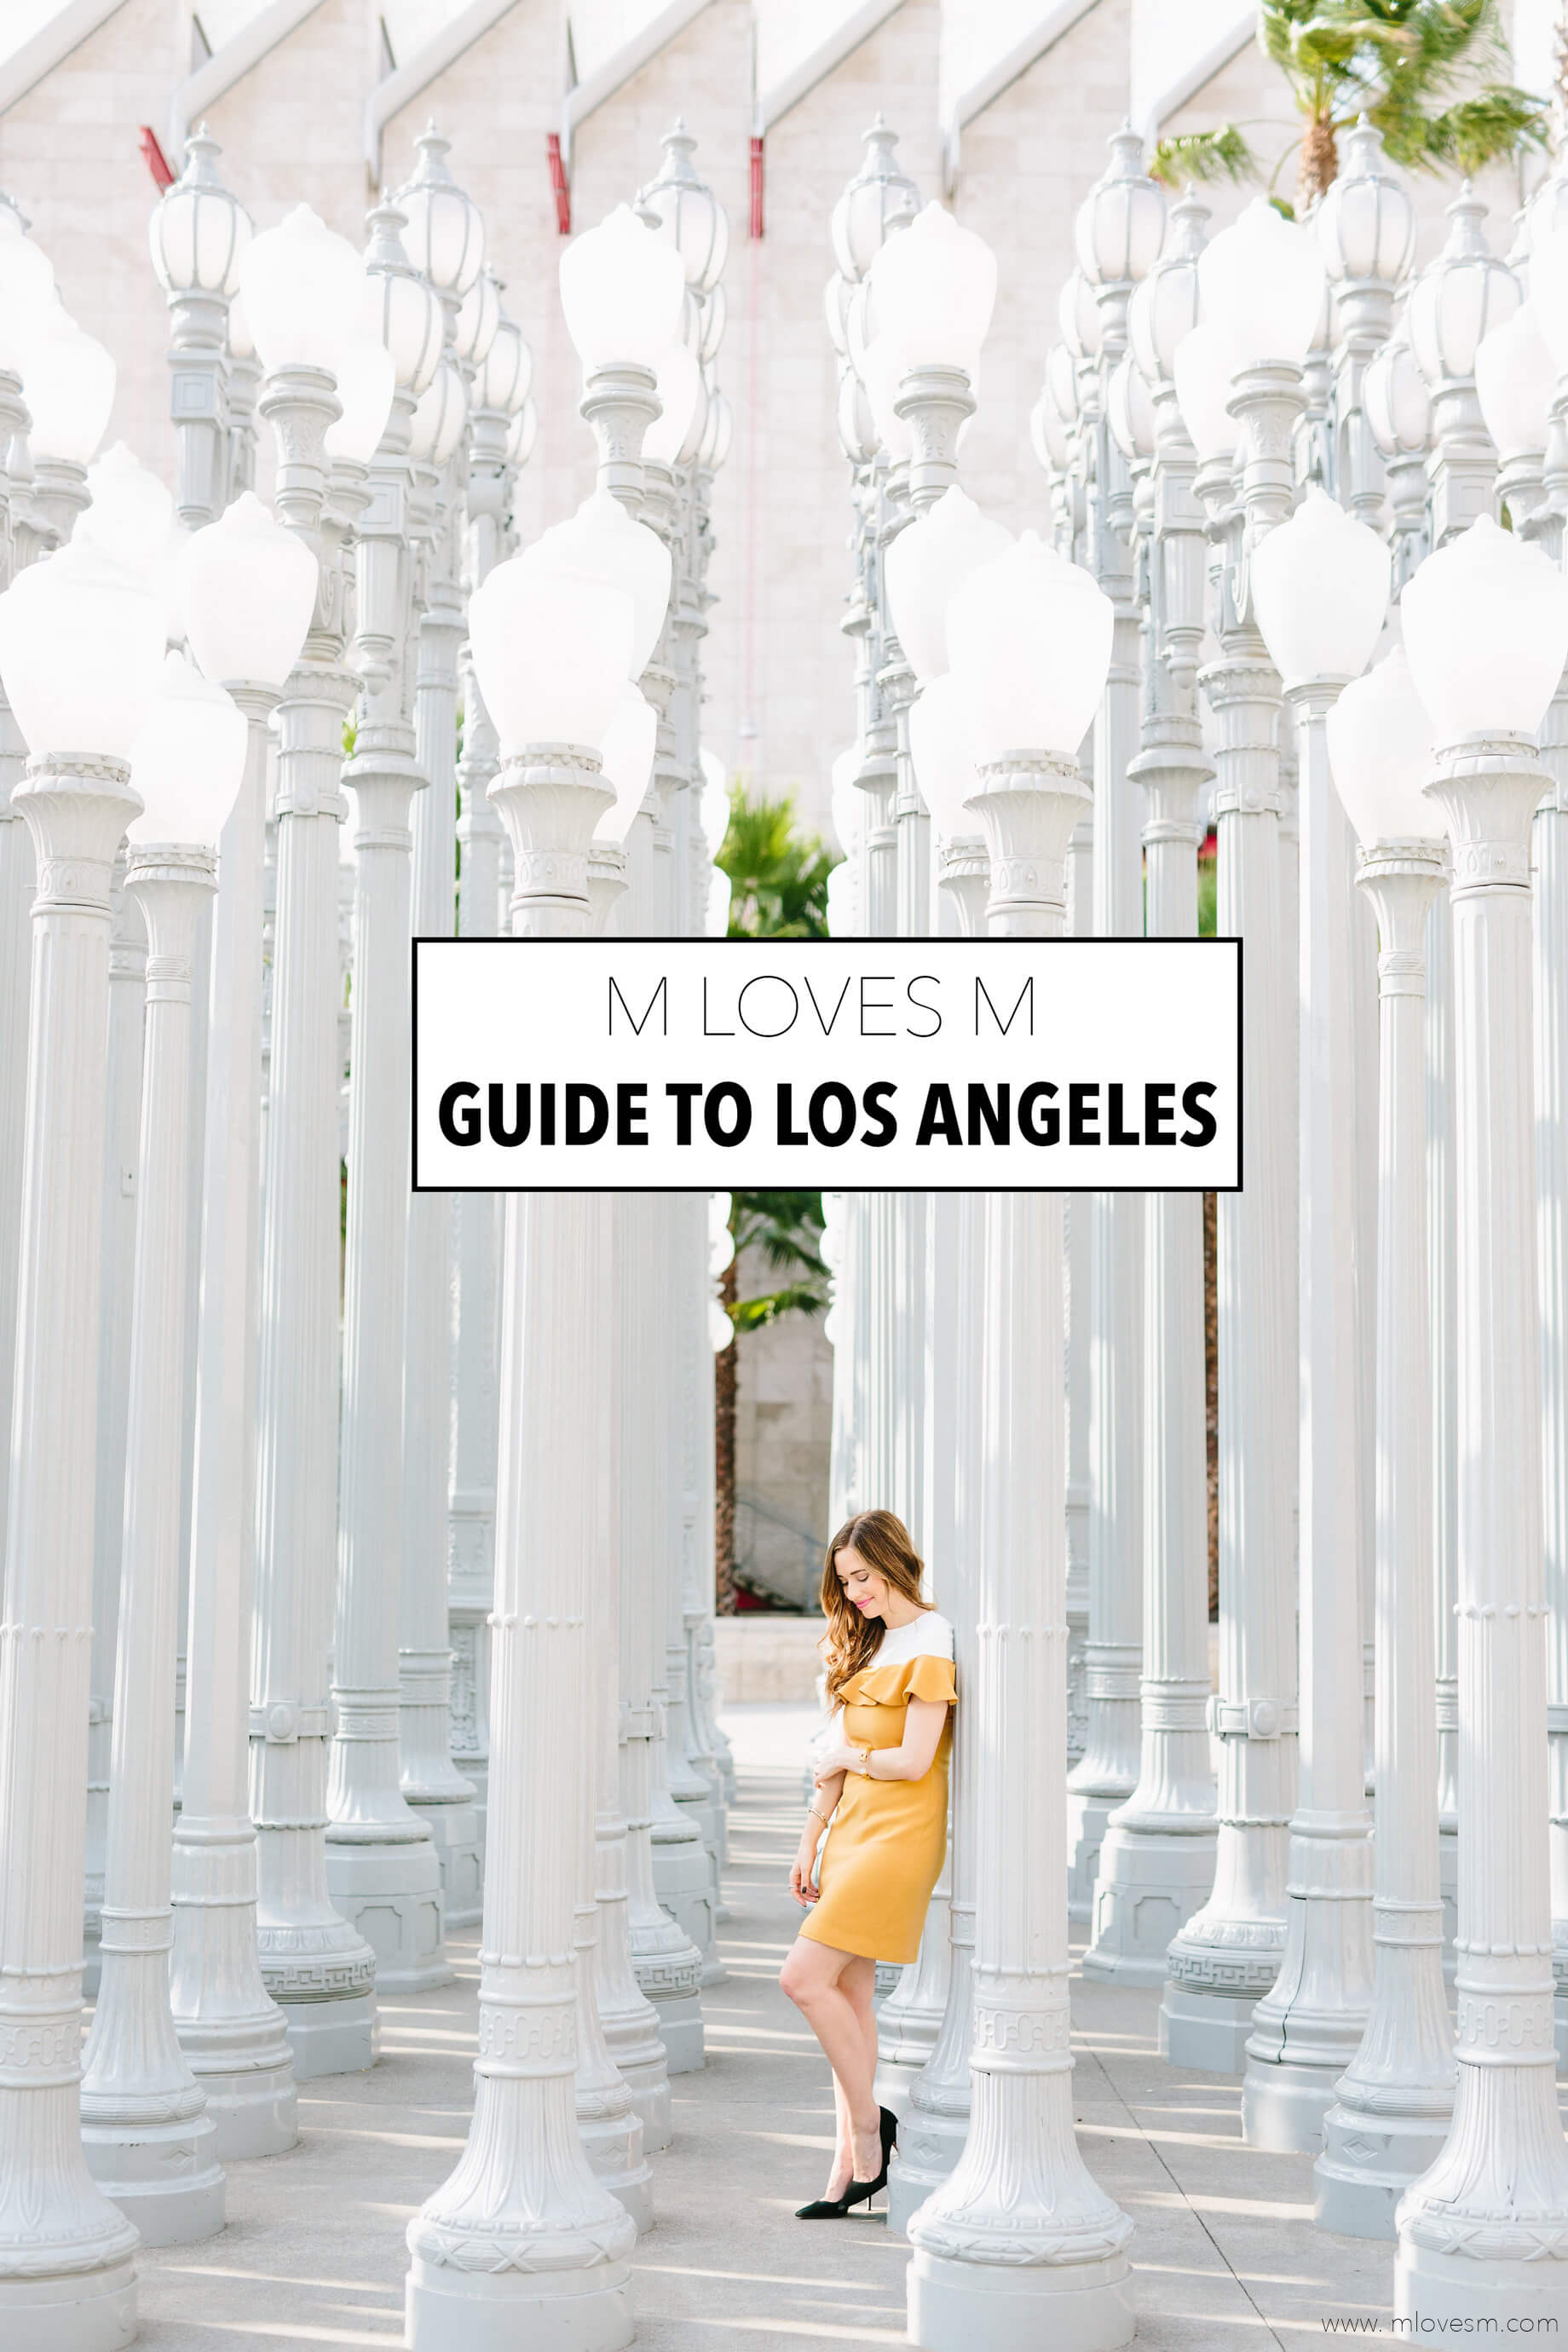 The M Loves M Guide to Los Angeles